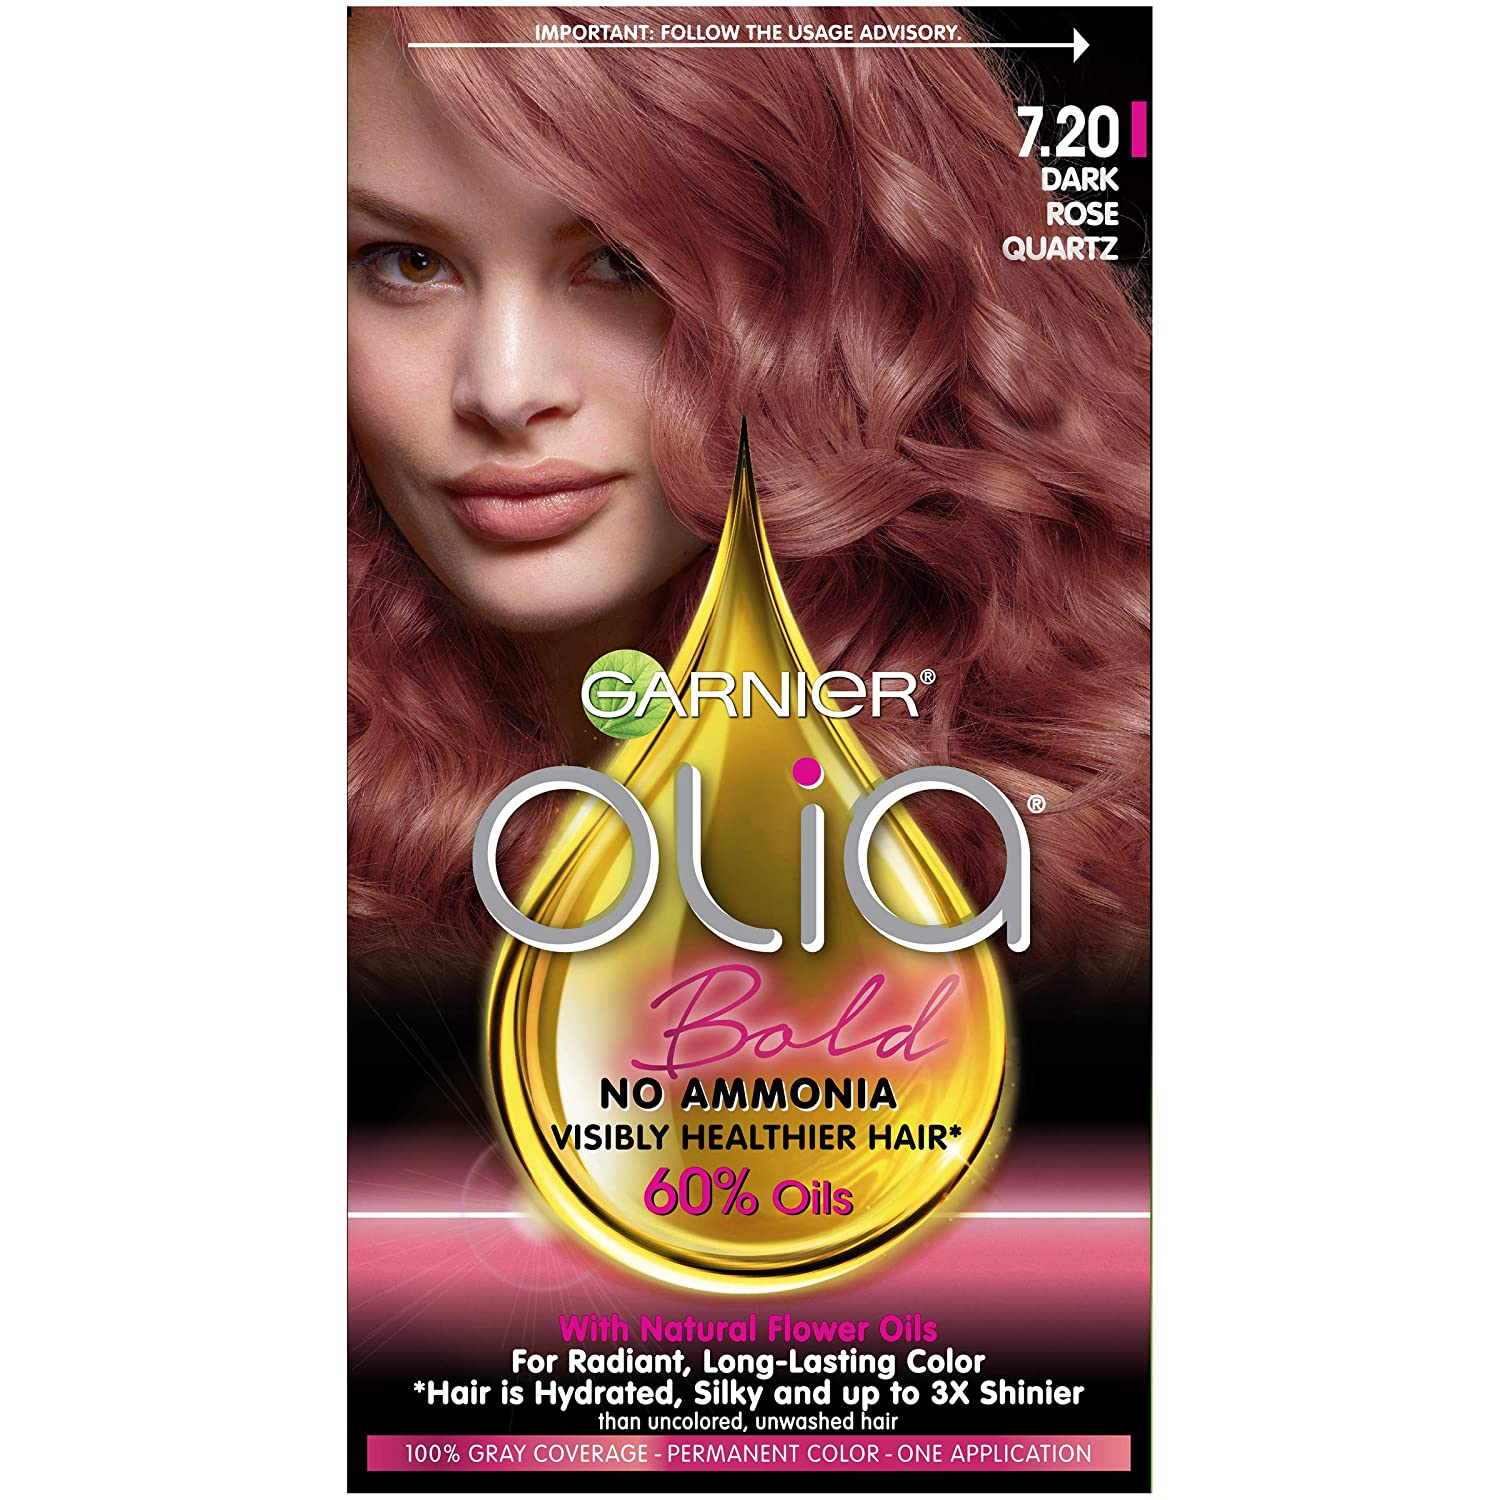 Garnier Olia Bold Ammonia Free Permanent Hair Color (Packaging May Vary), 7.20 Dark Rose Quartz, Rose Hair Dye